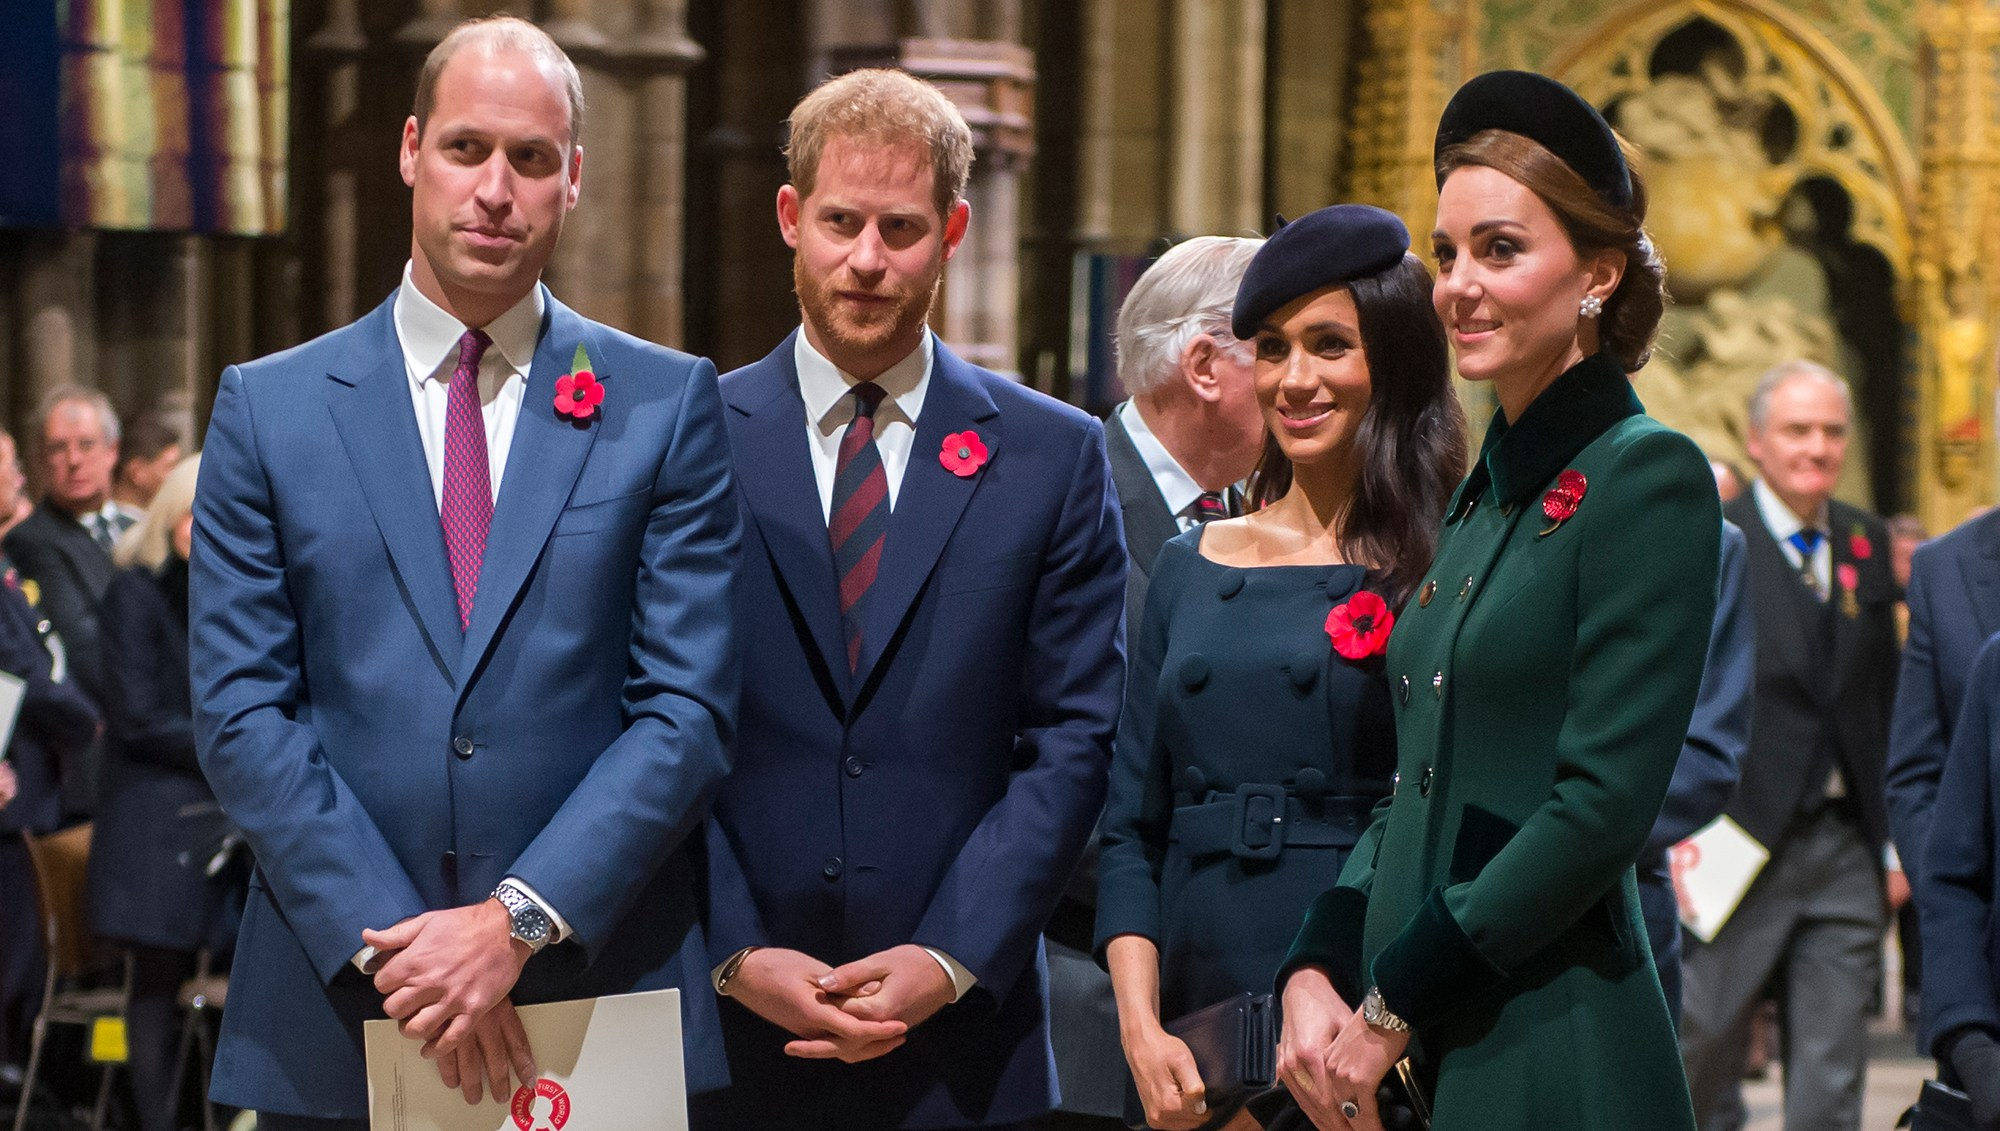 Prince William, Duke of Cambridge and Catherine, Duchess of Cambridge, Prince Harry, Duke of Sussex and Meghan, Duchess of Sussex.